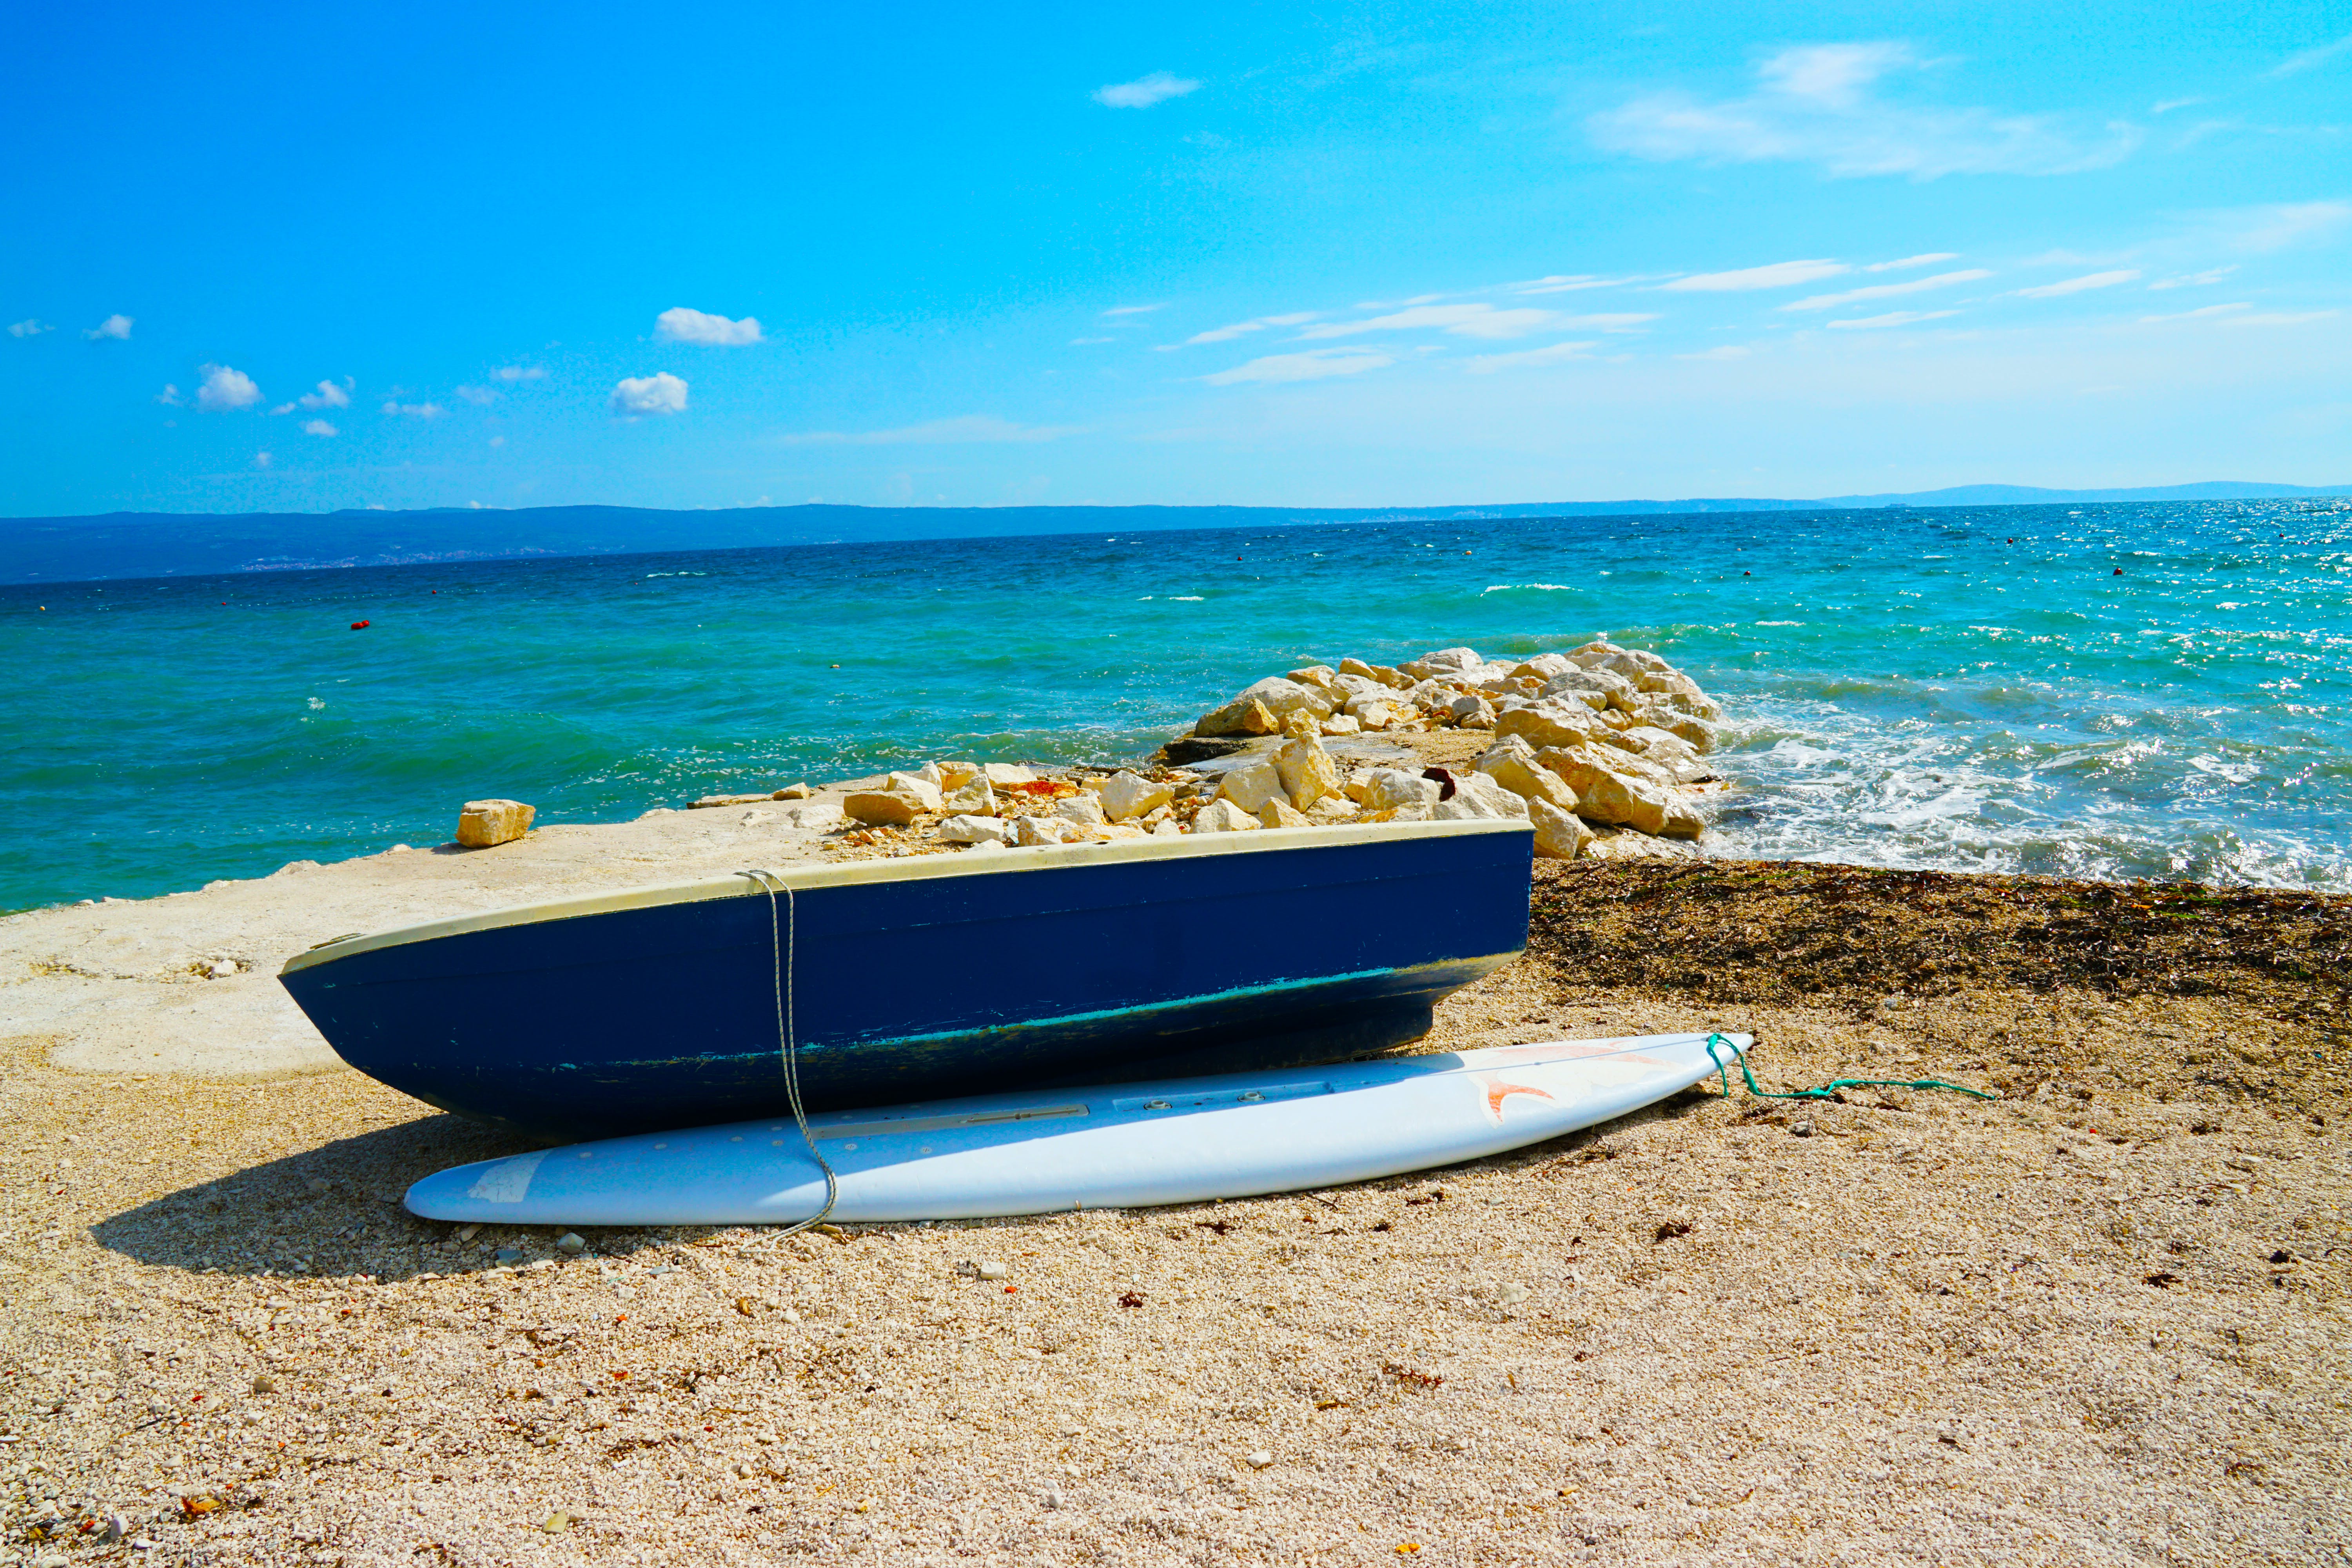 Blue Wooden Dinghy Boat Beside Body of Water